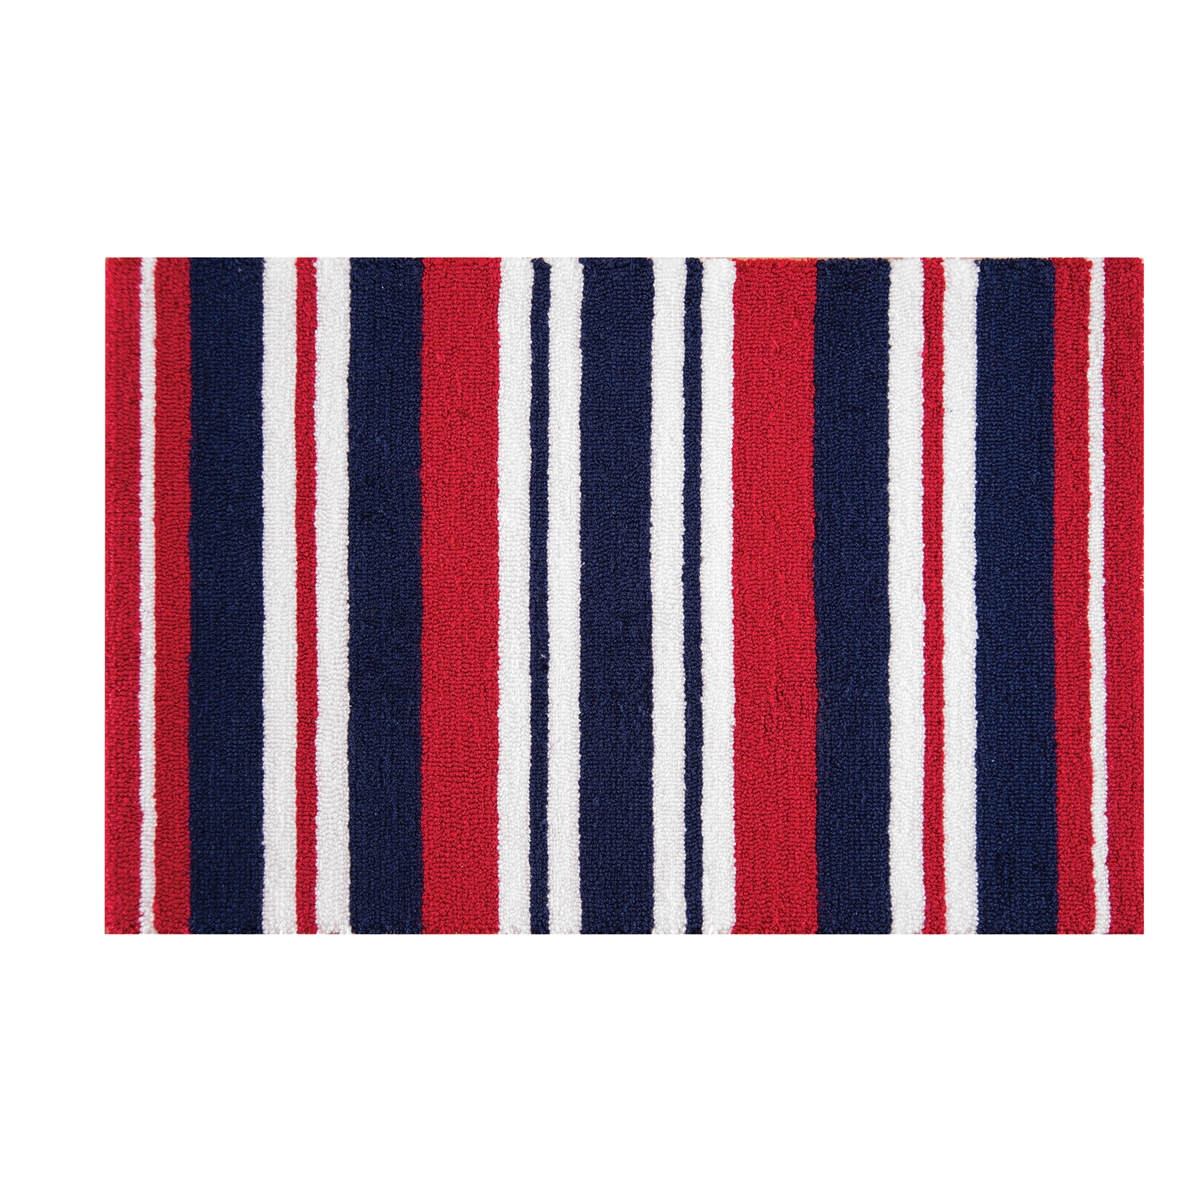 Red White And Blue Rugs Rugs Ideas